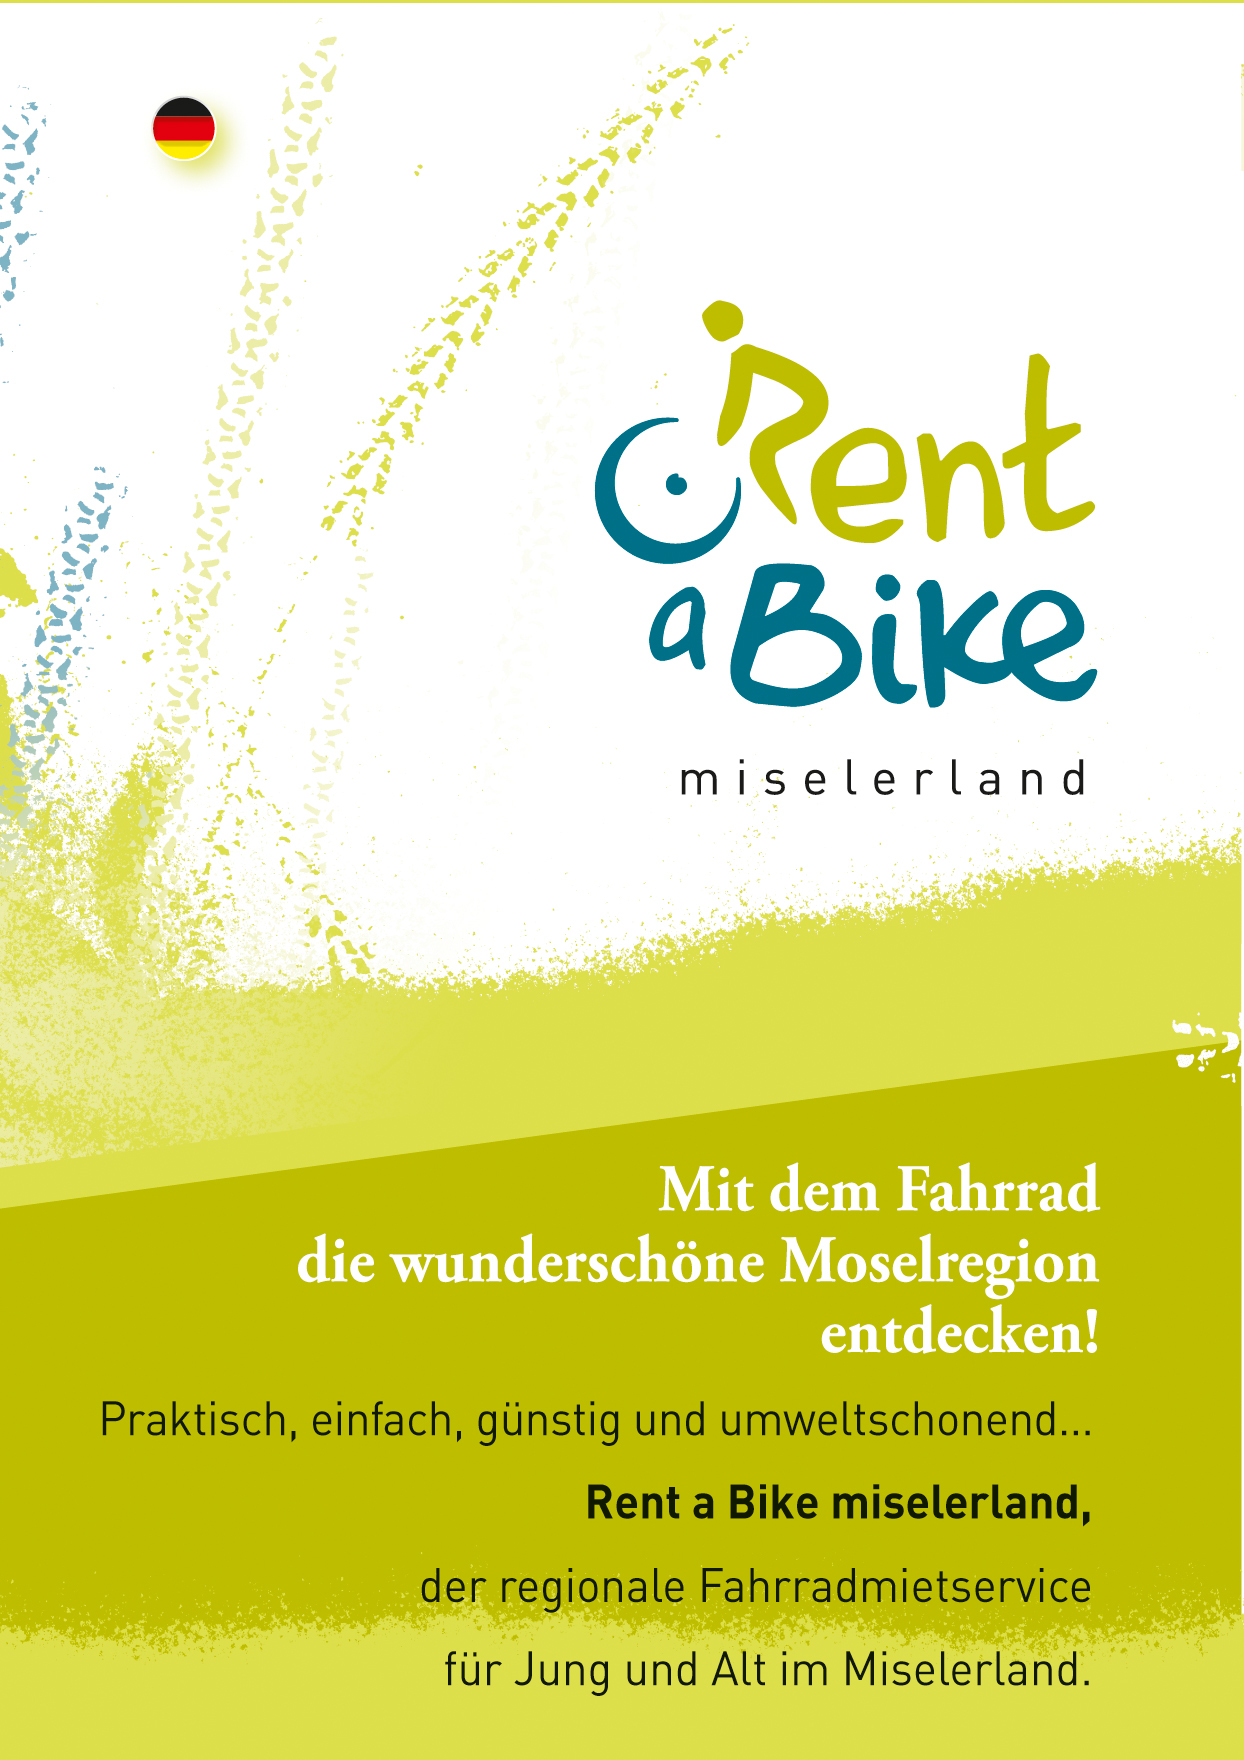 Rent-a-Bike_8.jpg#asset:764